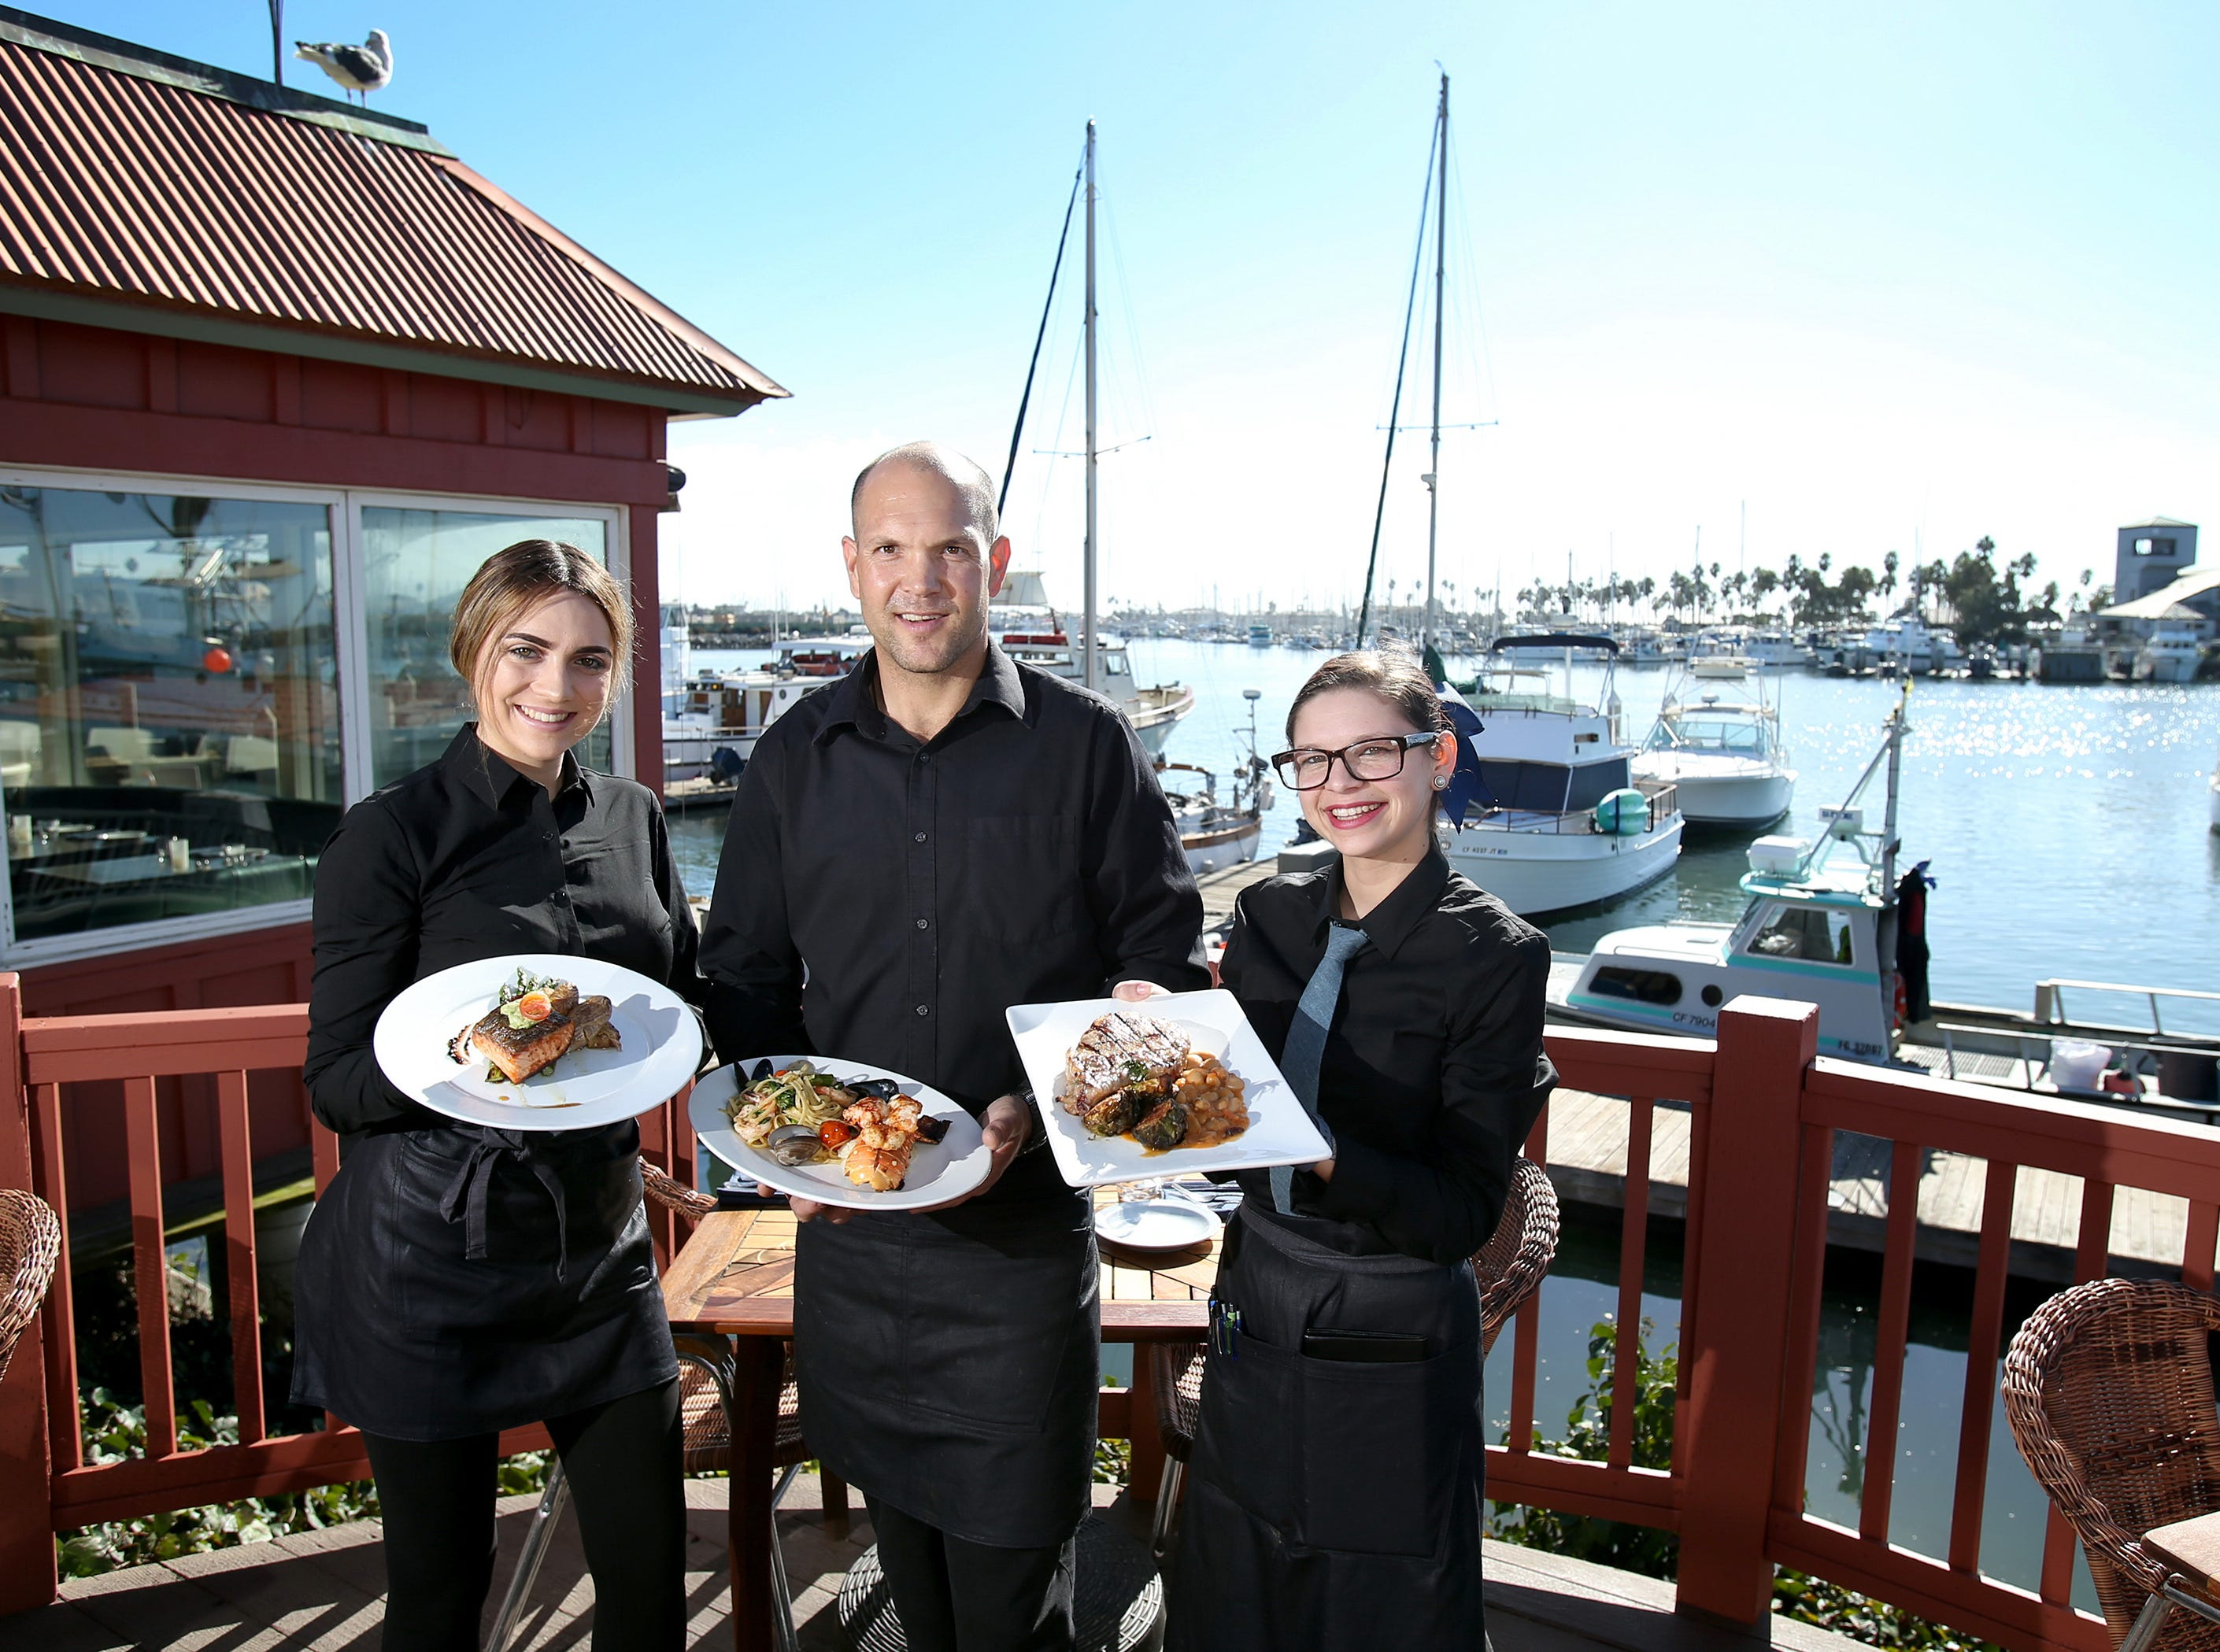 Water's Edge Restaurant and Bar's Hannah Fry (left to right), Brian Walters and Shawnna Rodriguez stand in the outdoor patio area of the new Ventura Harbor restaurant. Fry is holding the Crispy Skinned Salmon, Walters has the Mediterranean-Style Lobster Tail and Rodriguez has the Chipotle Orange-Glazed Pork Chop.